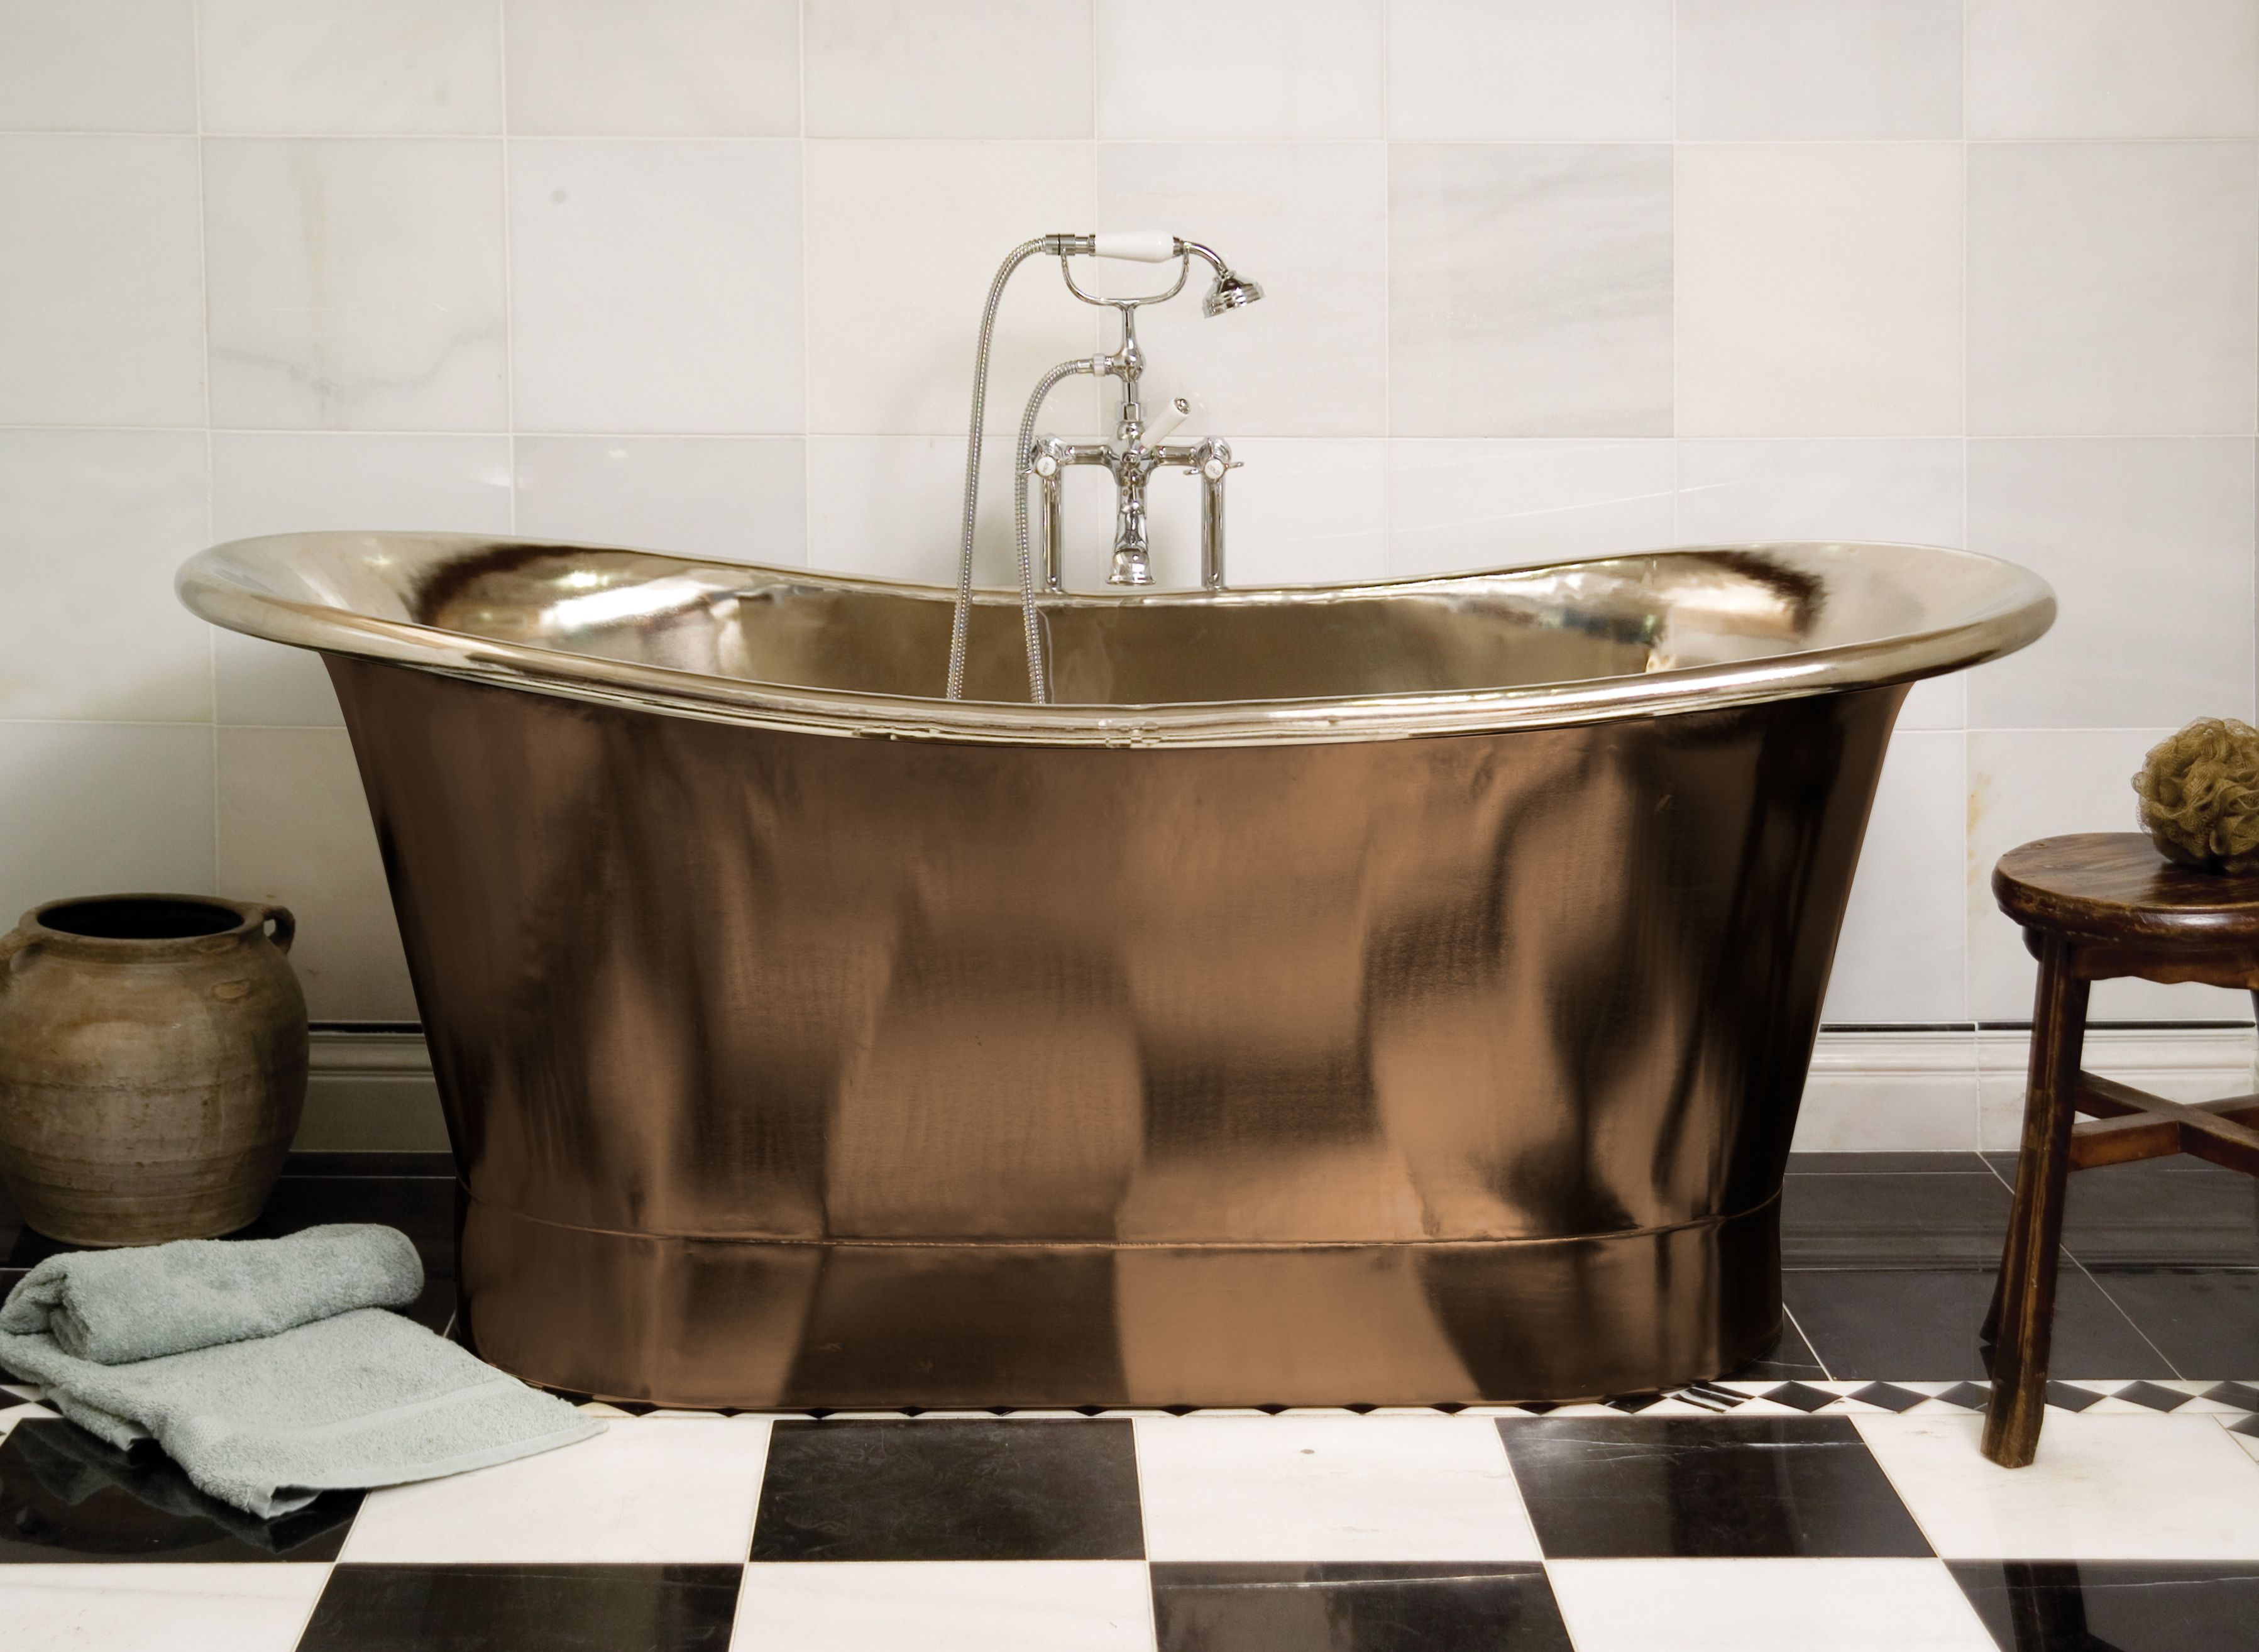 Fontaine Bright Copper Bath | Modern version of old-fashioned tubs ...